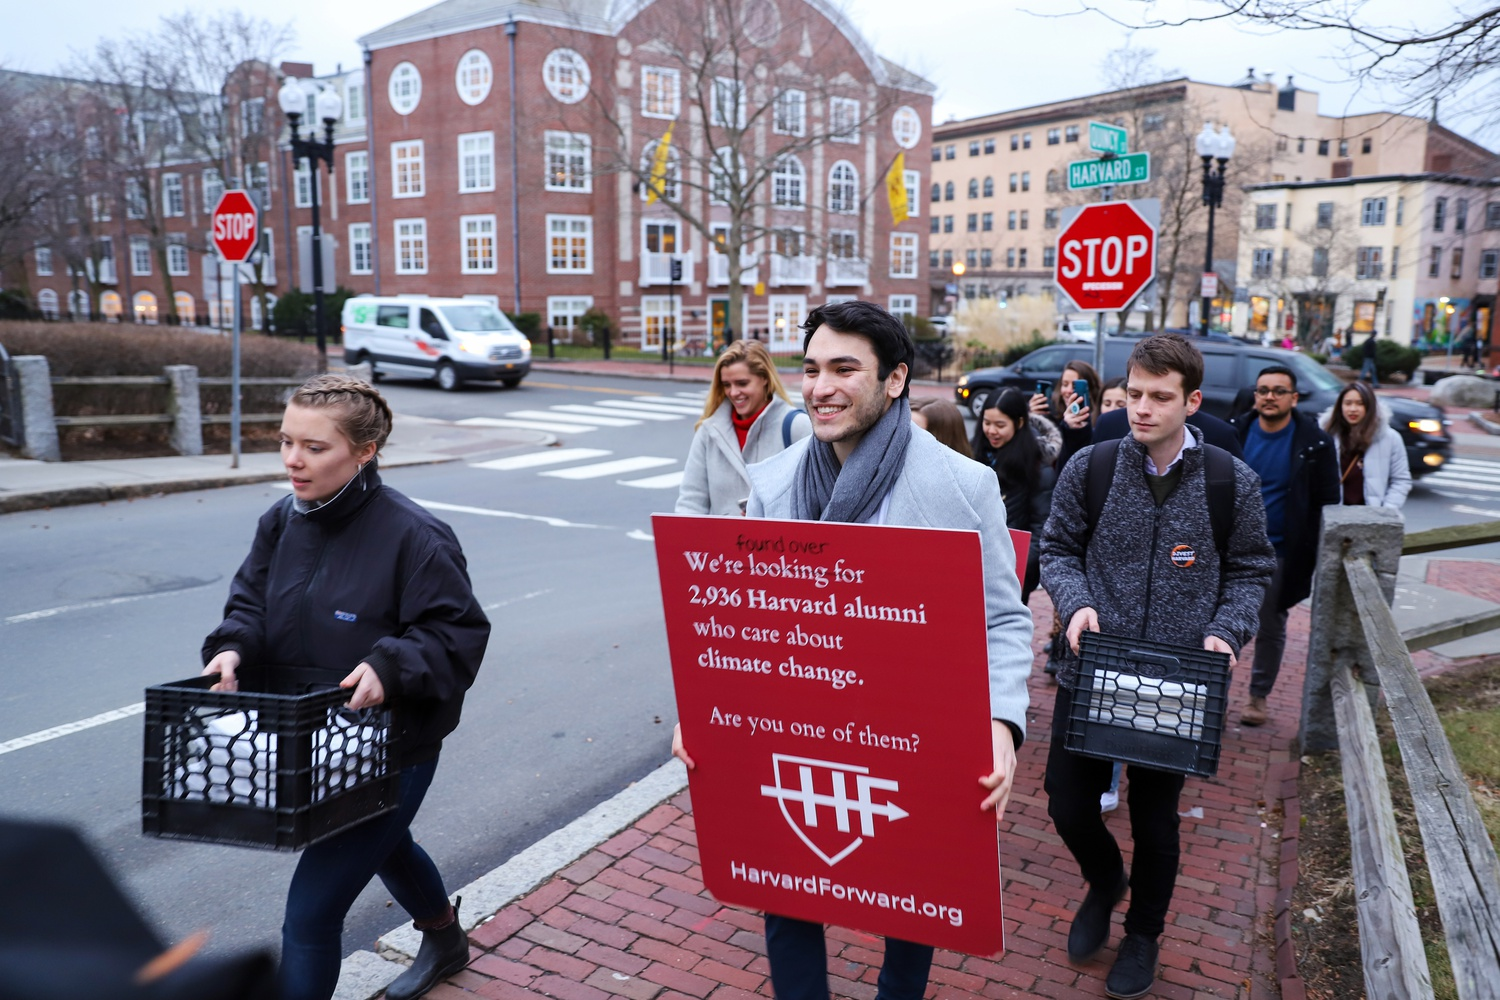 Harvard Forward is a group led by students and alumni working to bring attention to climate change and recent alumni representation within Harvard's governance boards.